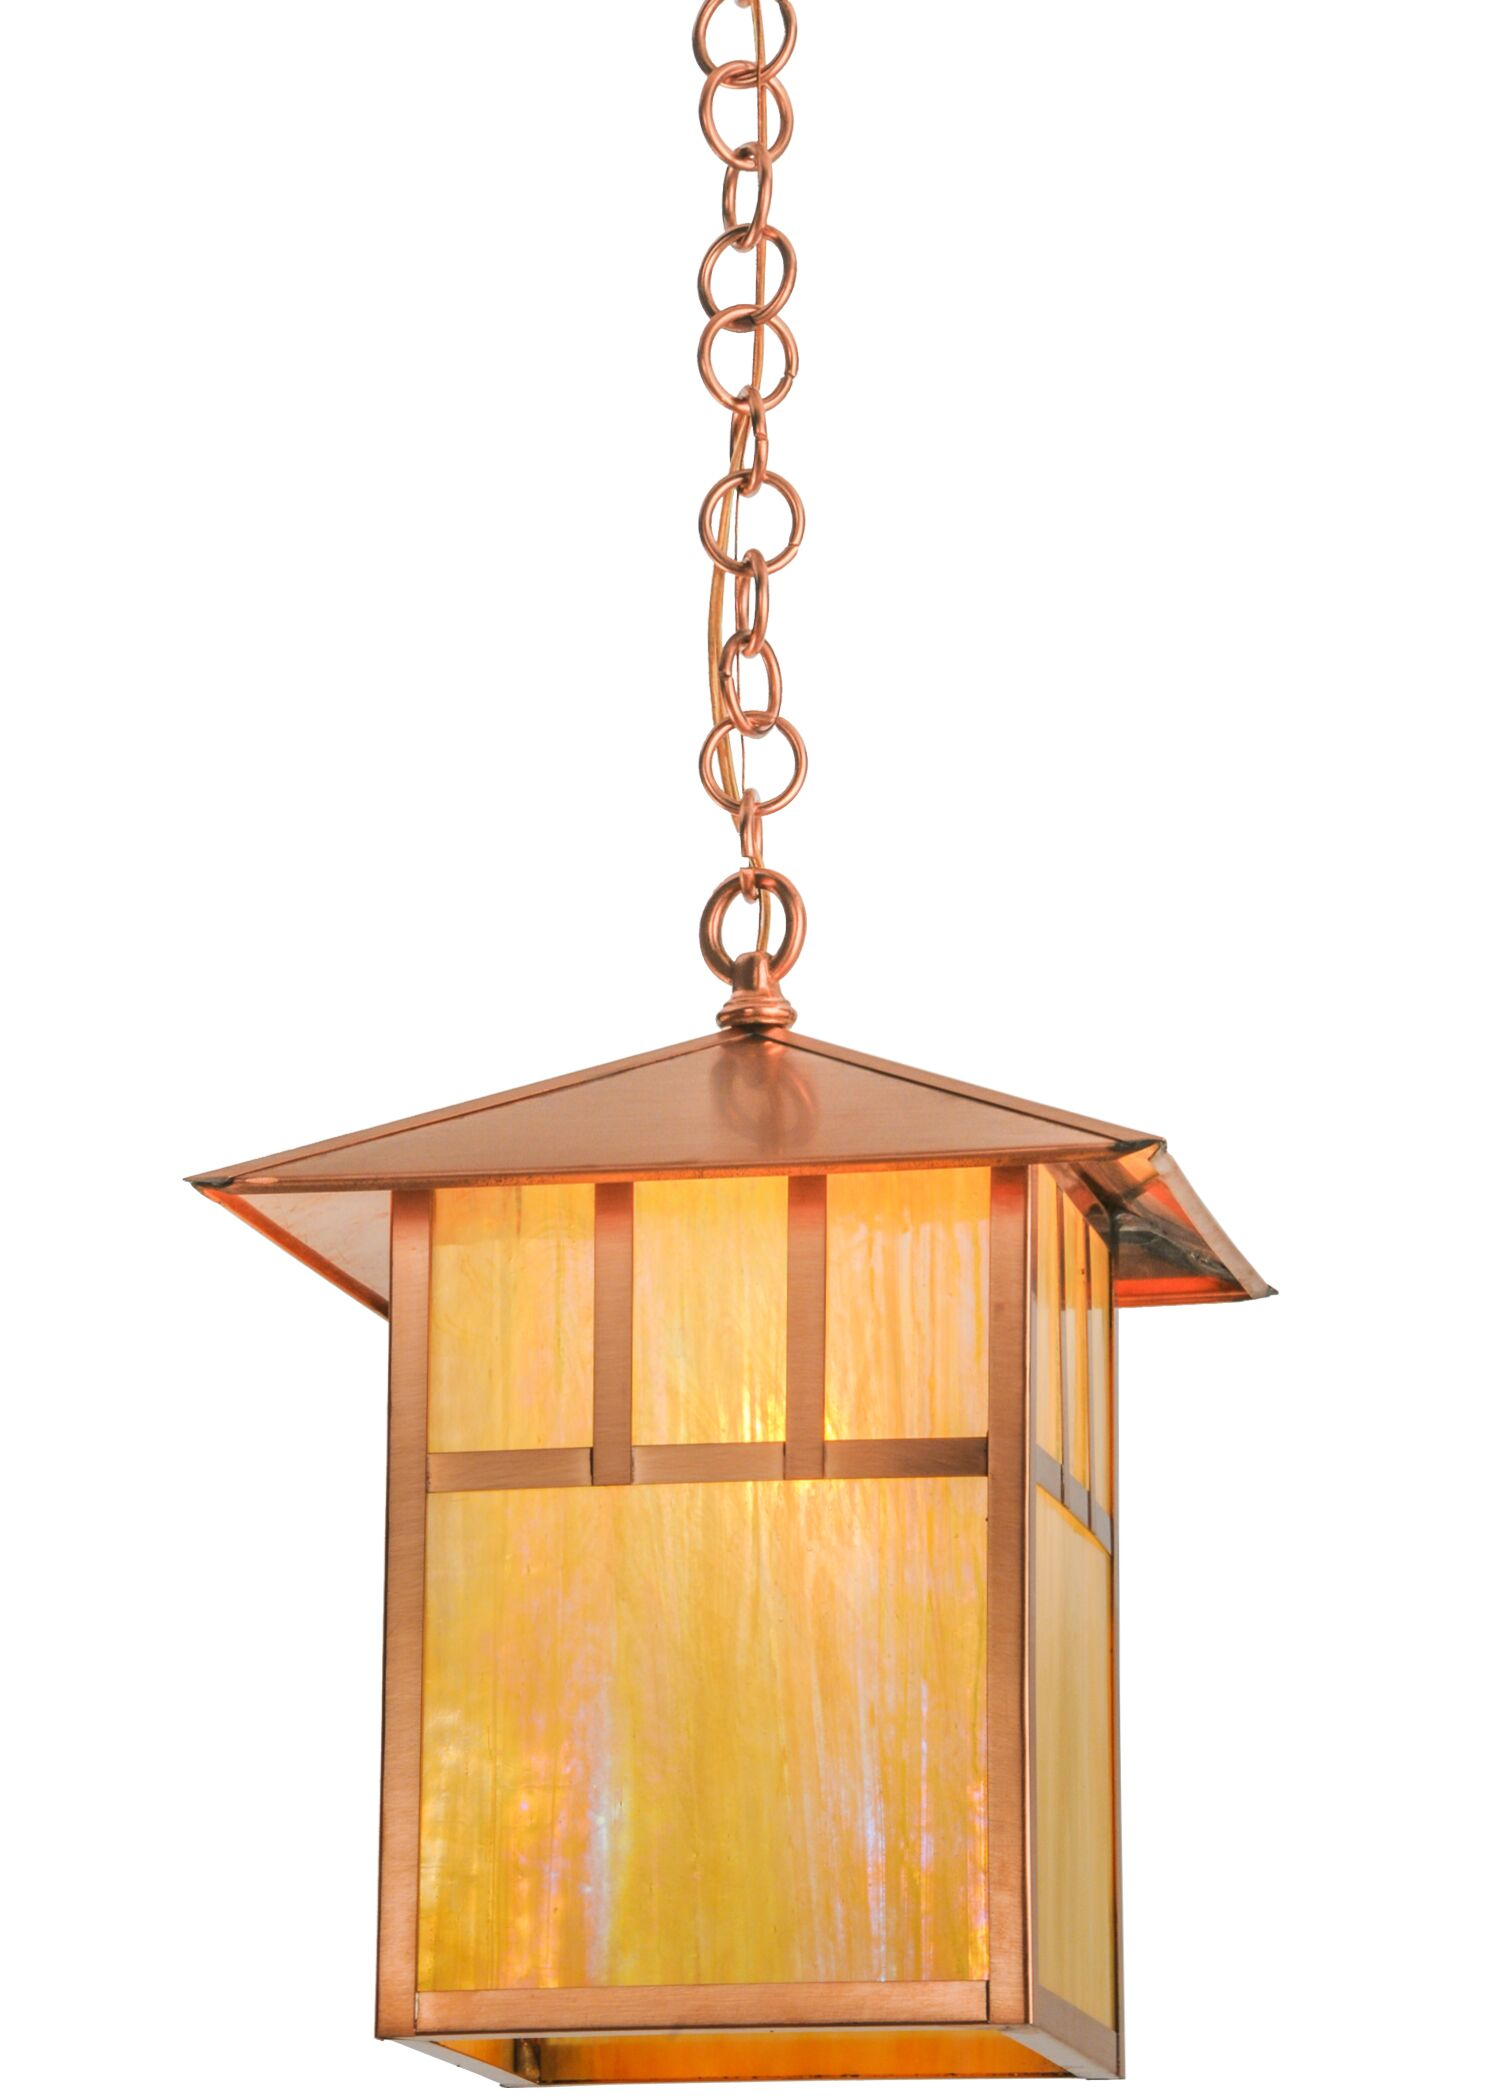 Greenbriar Oak Seneca Double Bar Mission 1-Light Lantern Pendant